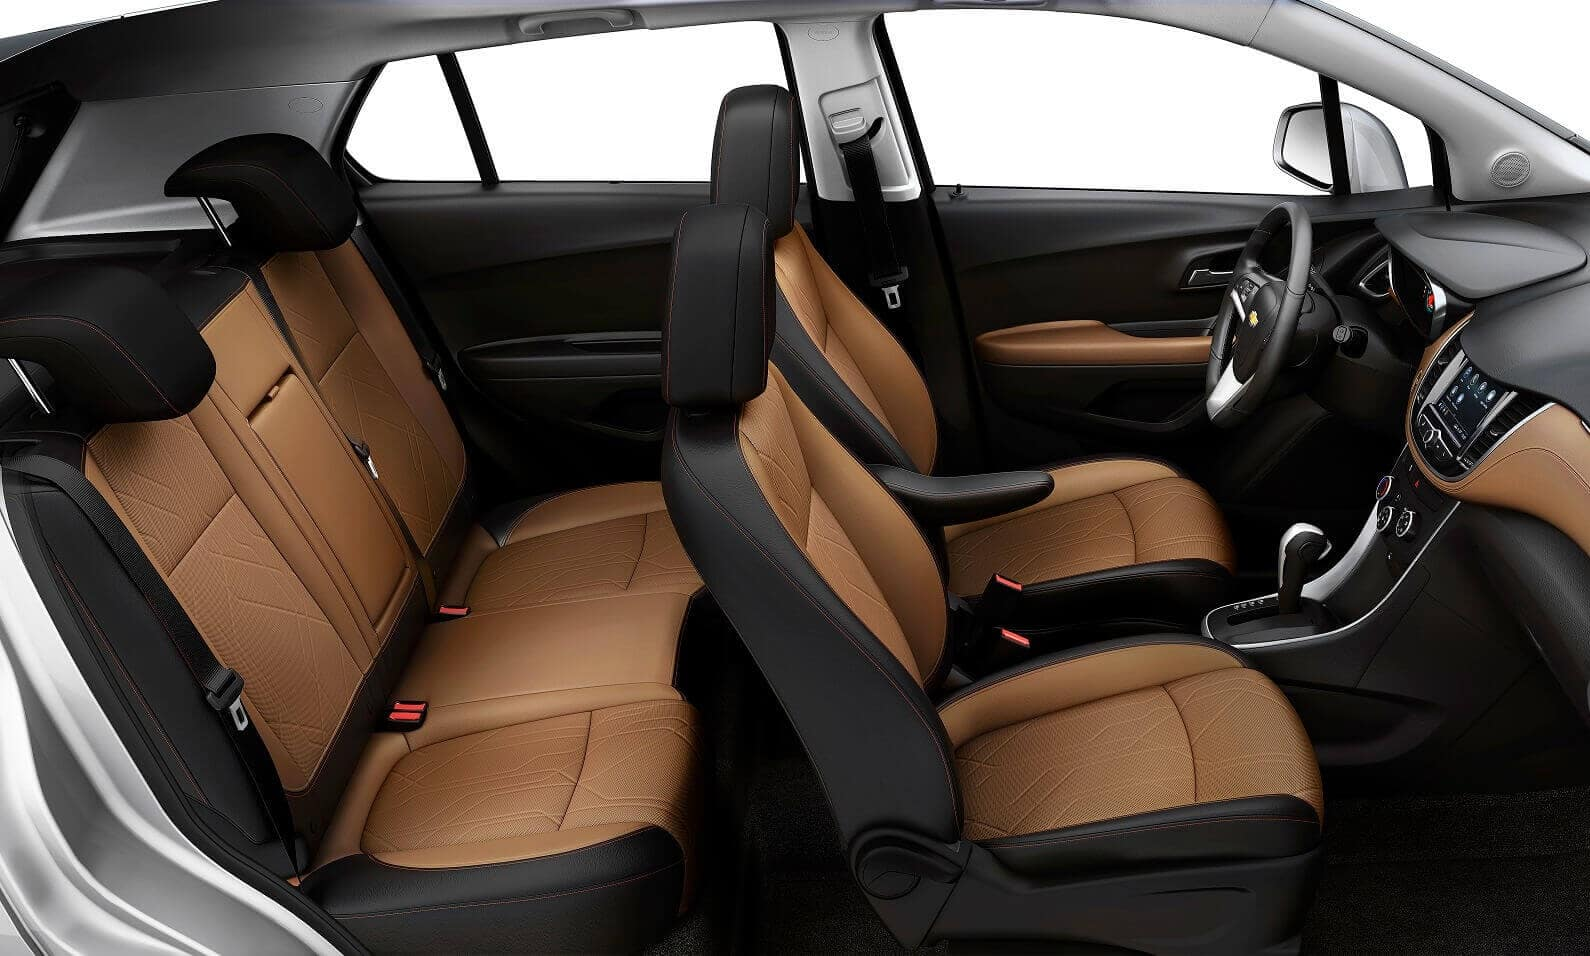 Chevrolet Trax Interior Space